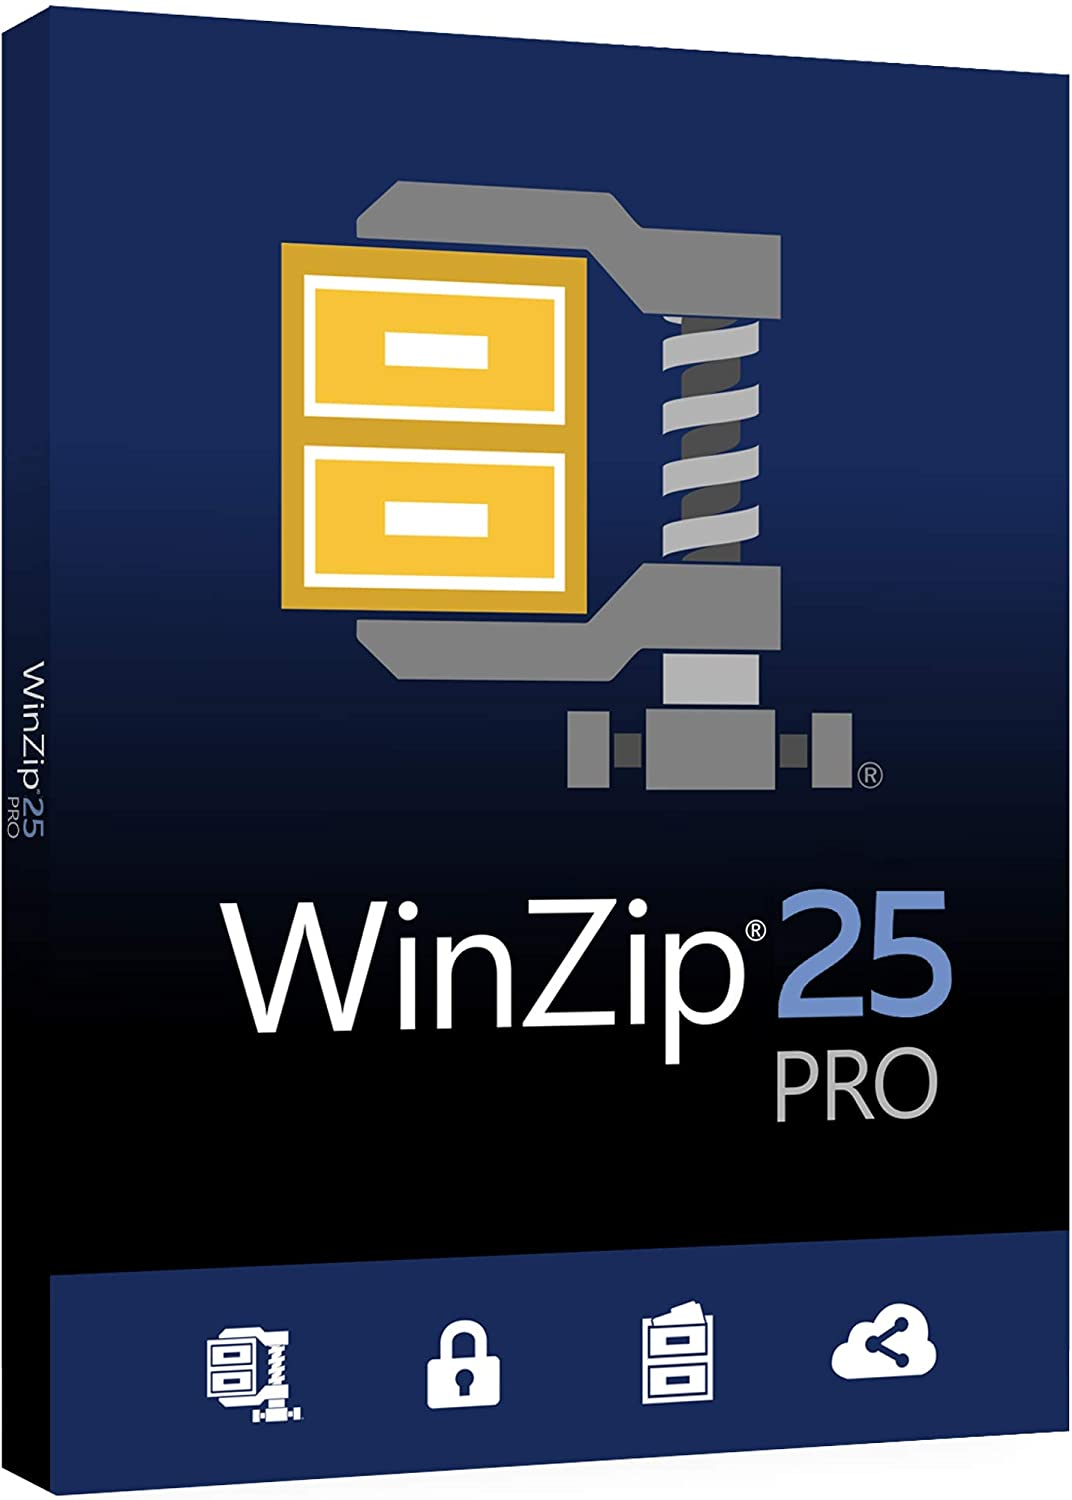 WinZip Pro 25Crack + Full License Key Free Download